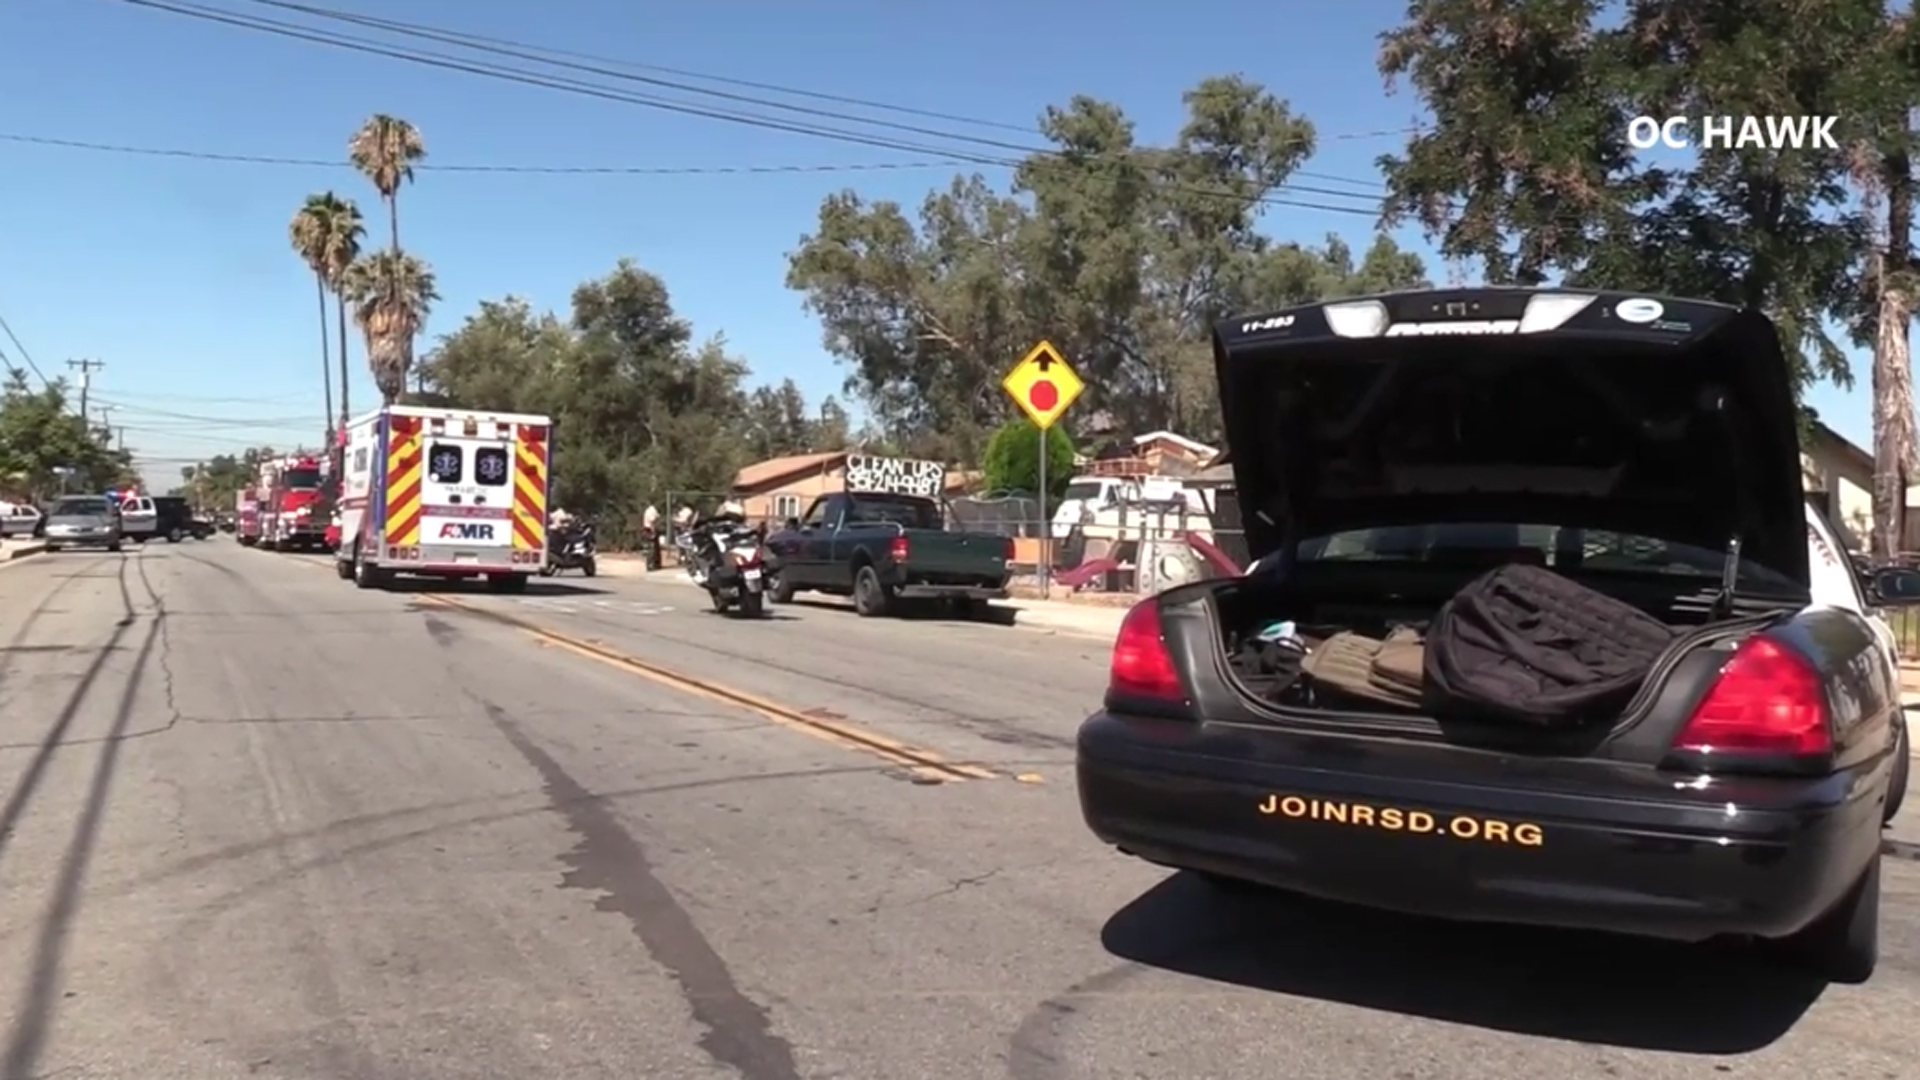 An investigation was underway in Moreno Valley on Sept. 12, 2018, after a toddler was fatally struck by a commercial truck, authorities say. (Credit: OC Hawk)